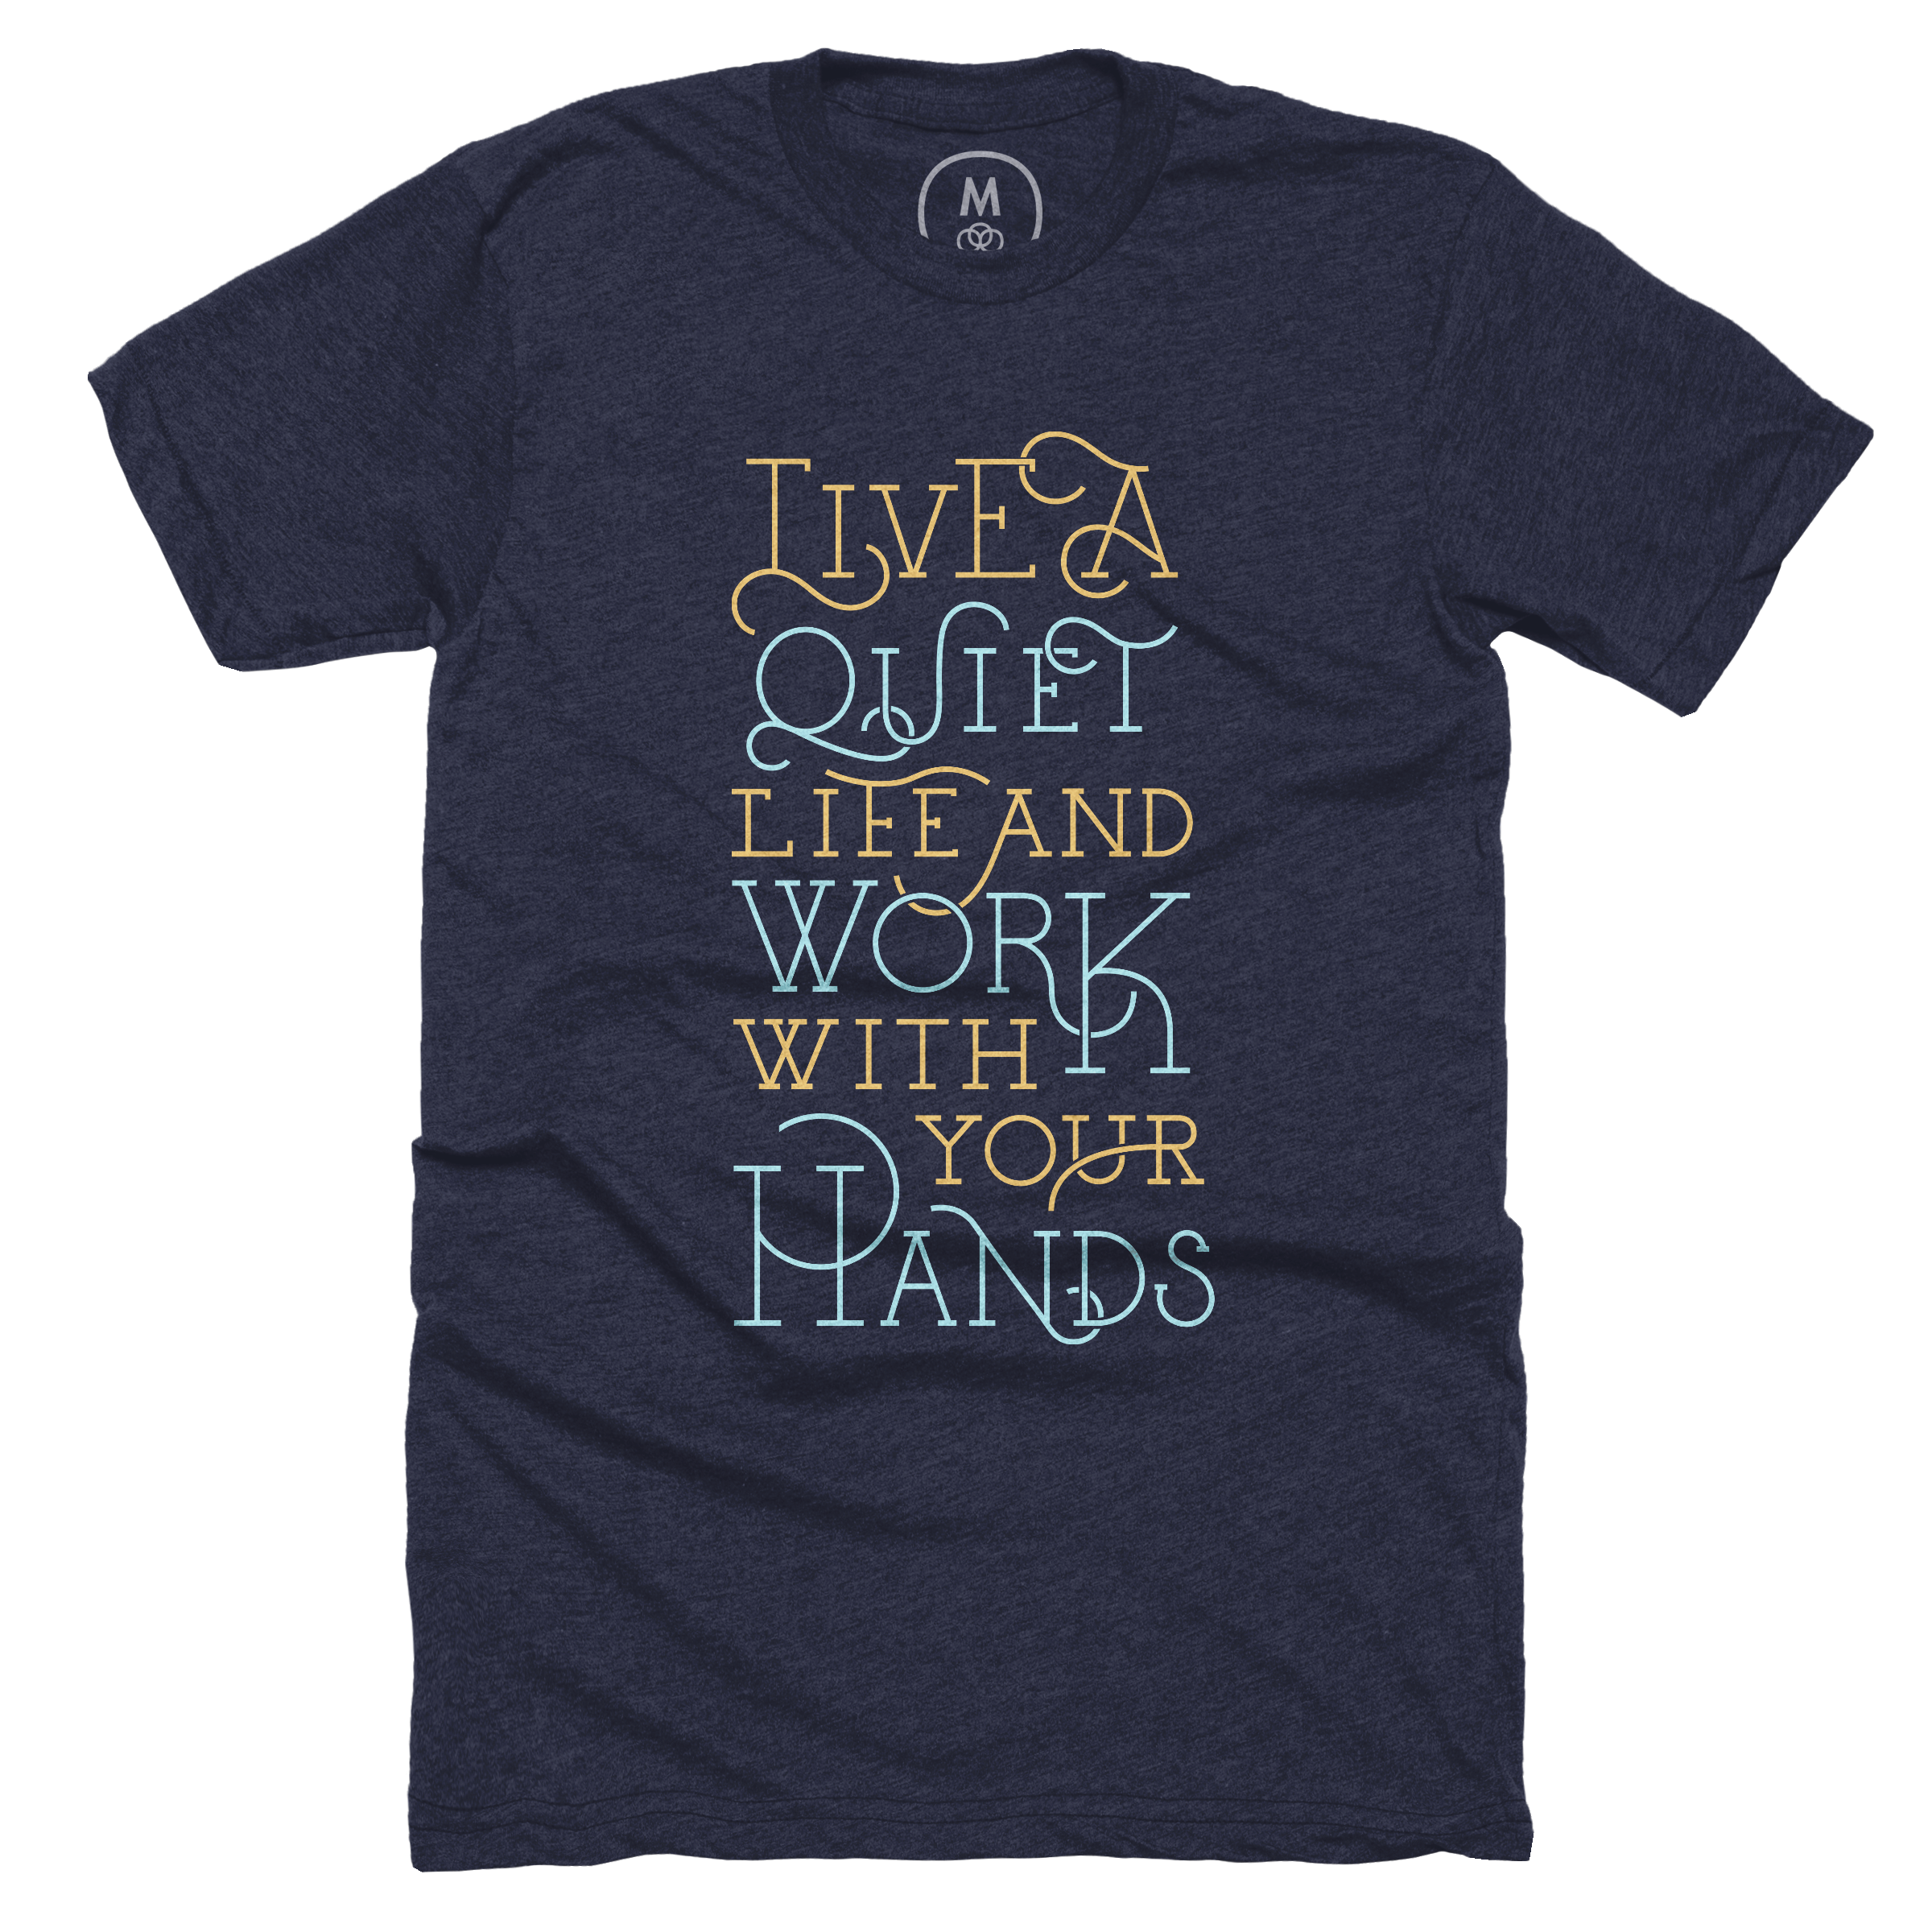 Work With Your Hands